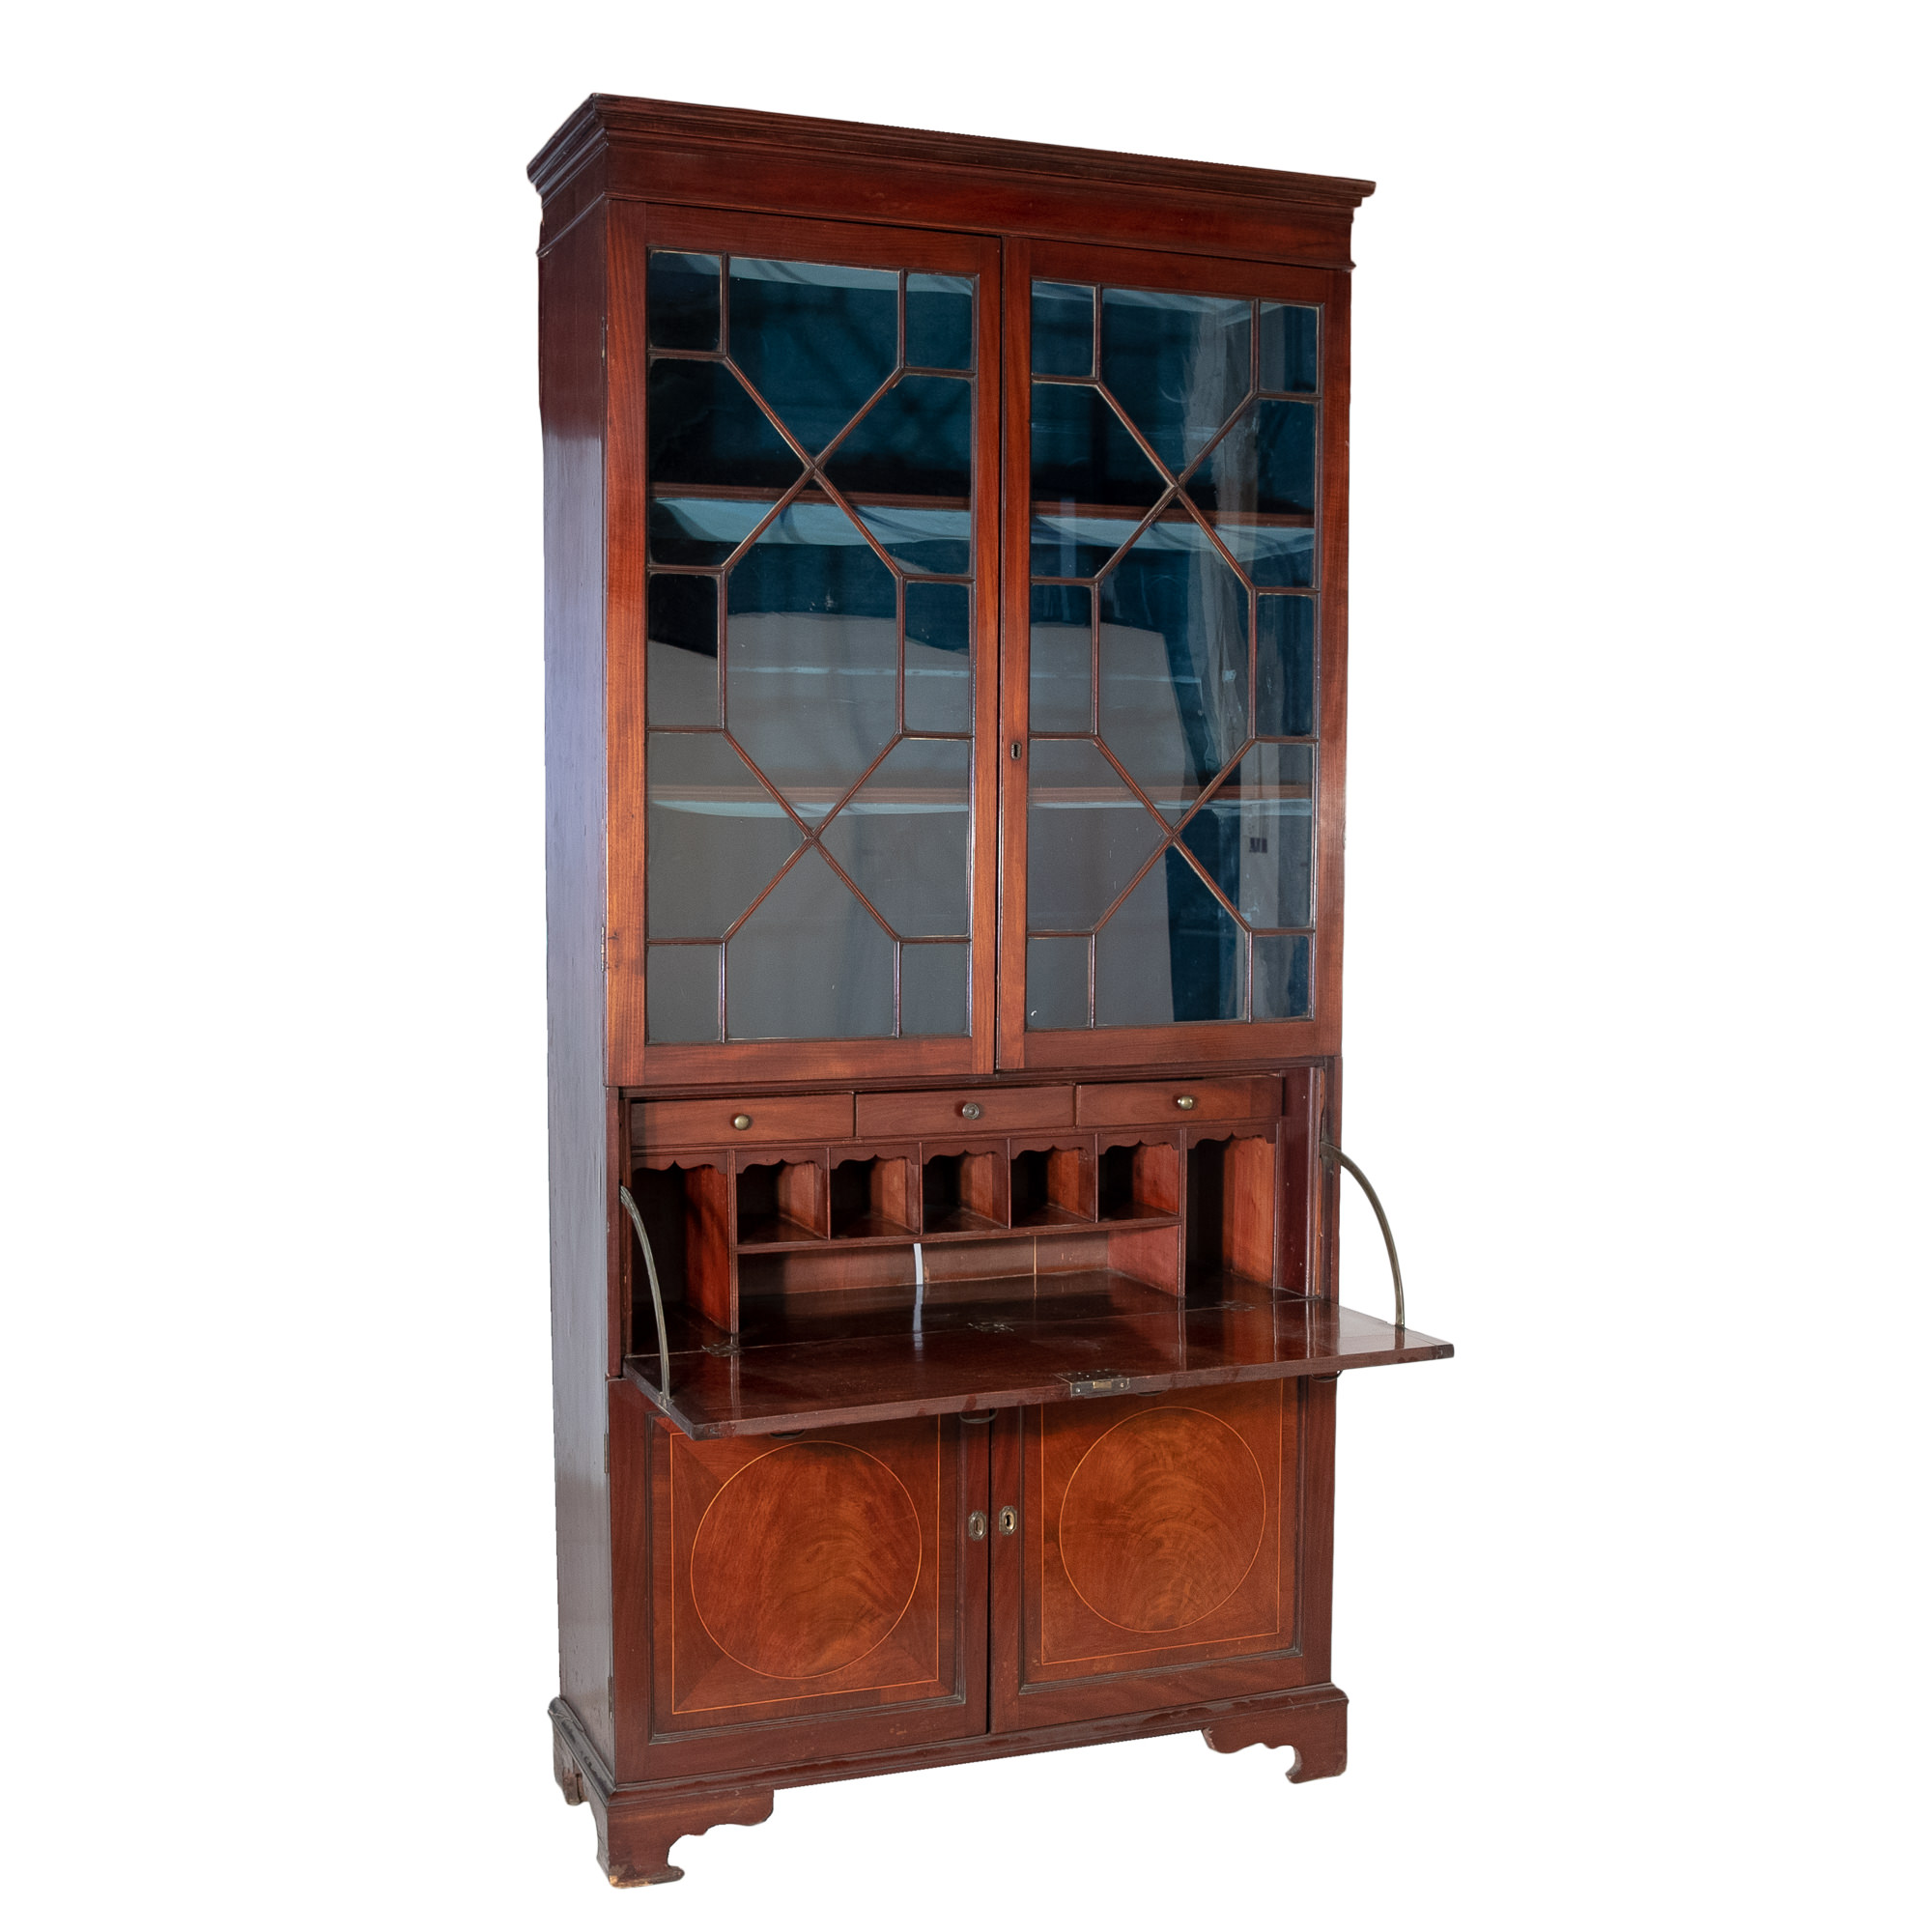 'Tall Georgian Style One Piece Mahogany and Boxwood Strung Secretaire Bookcase 19th Century'